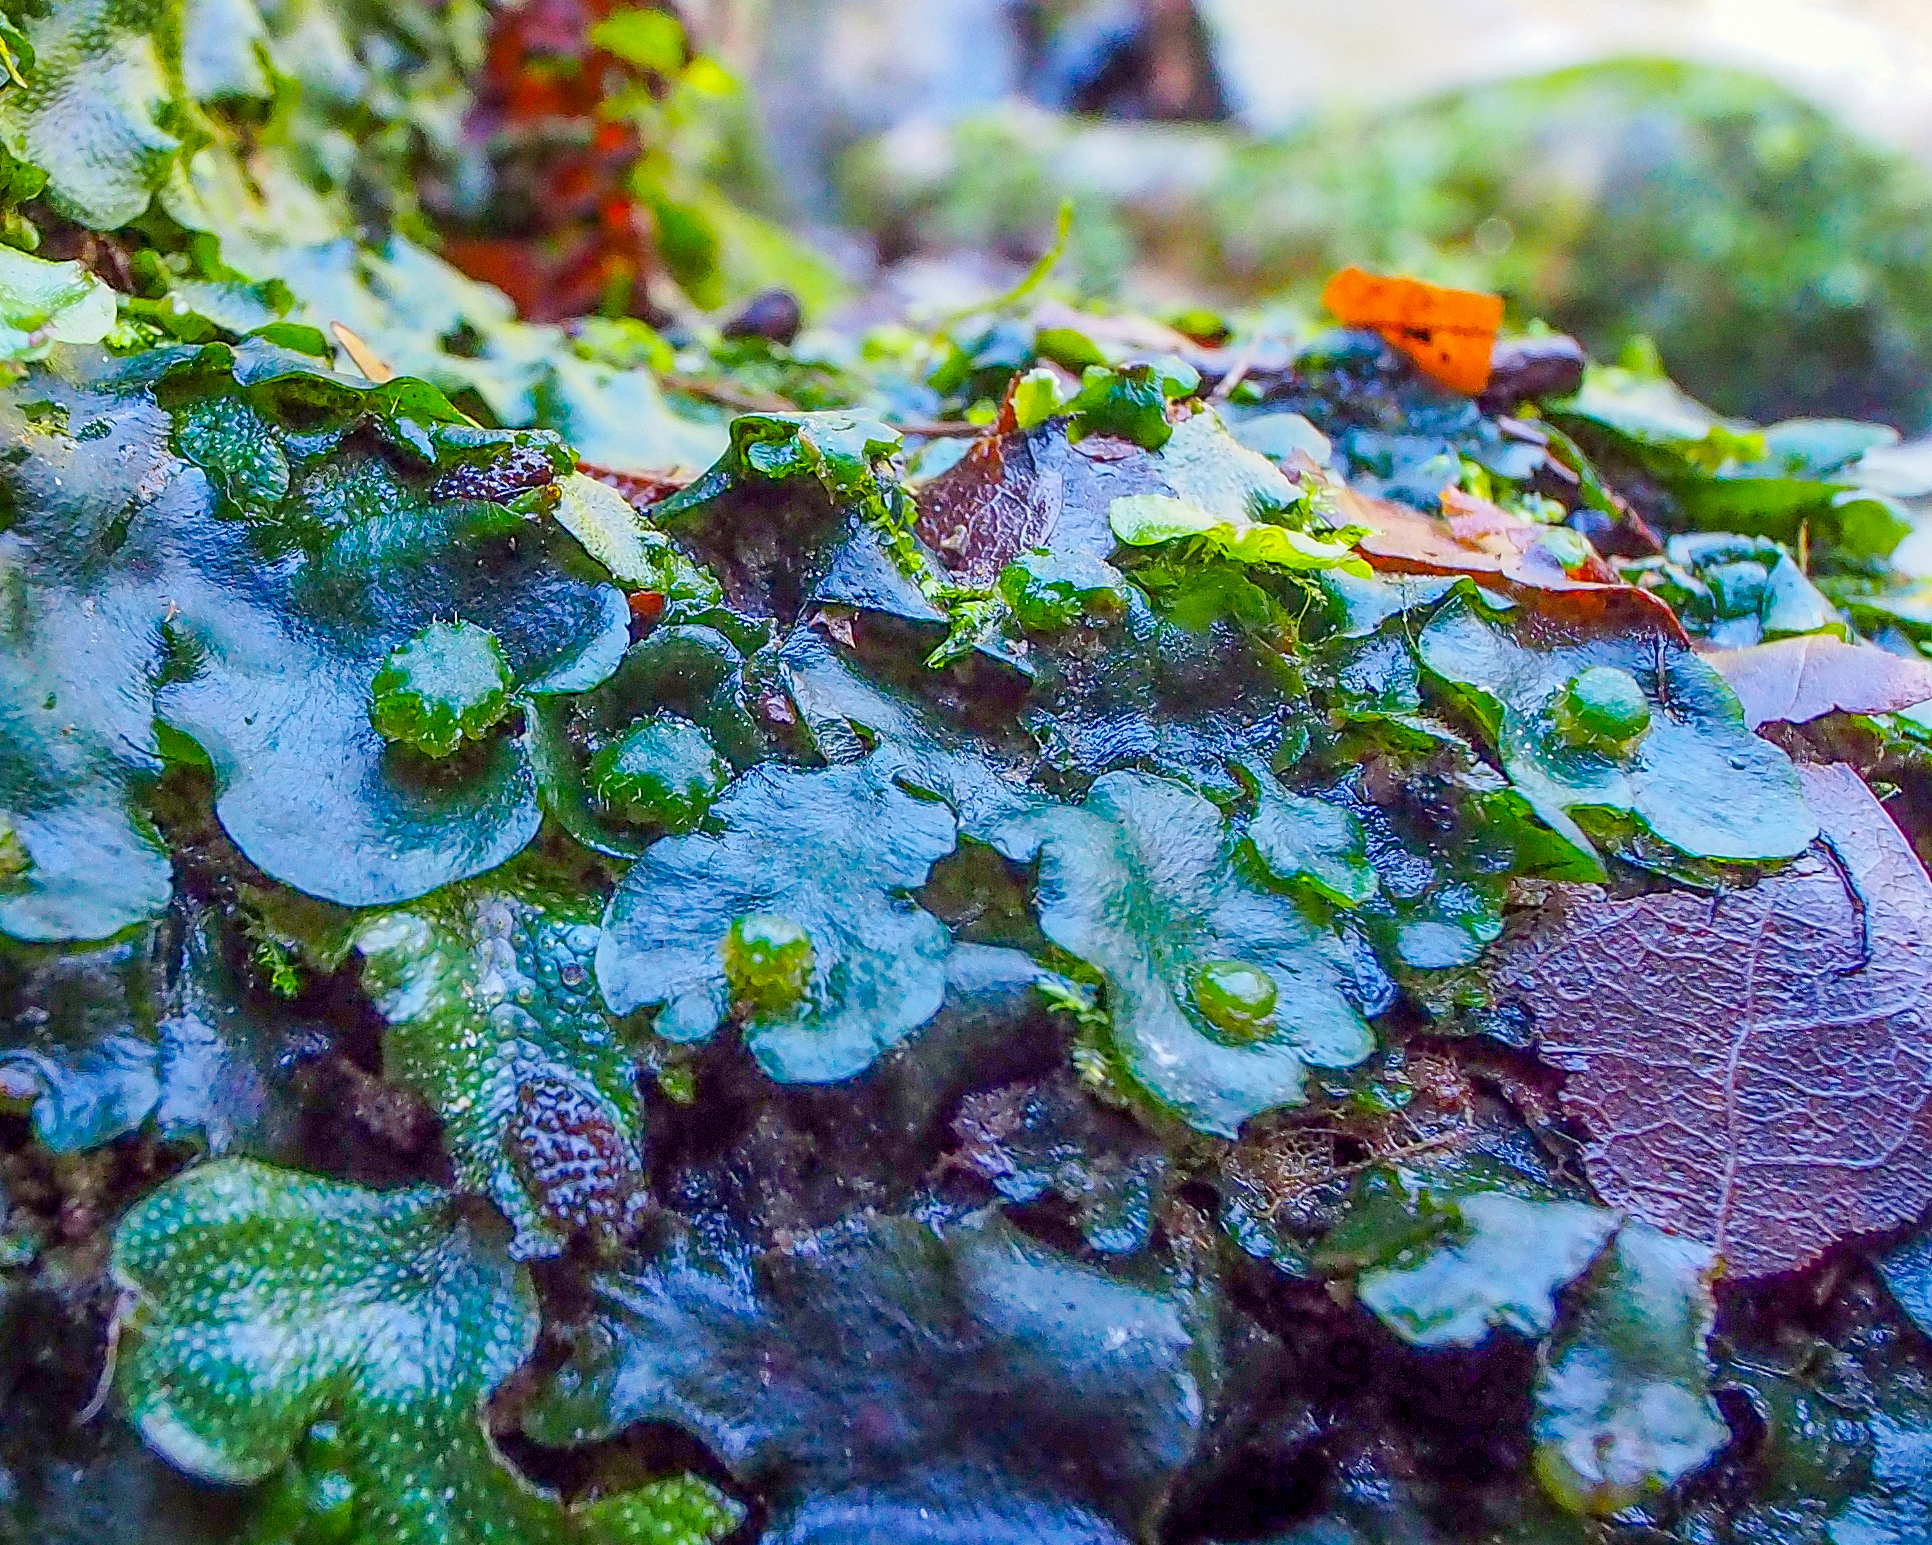 Half the nation's Dumortier's Liverwort is right here in Hastings